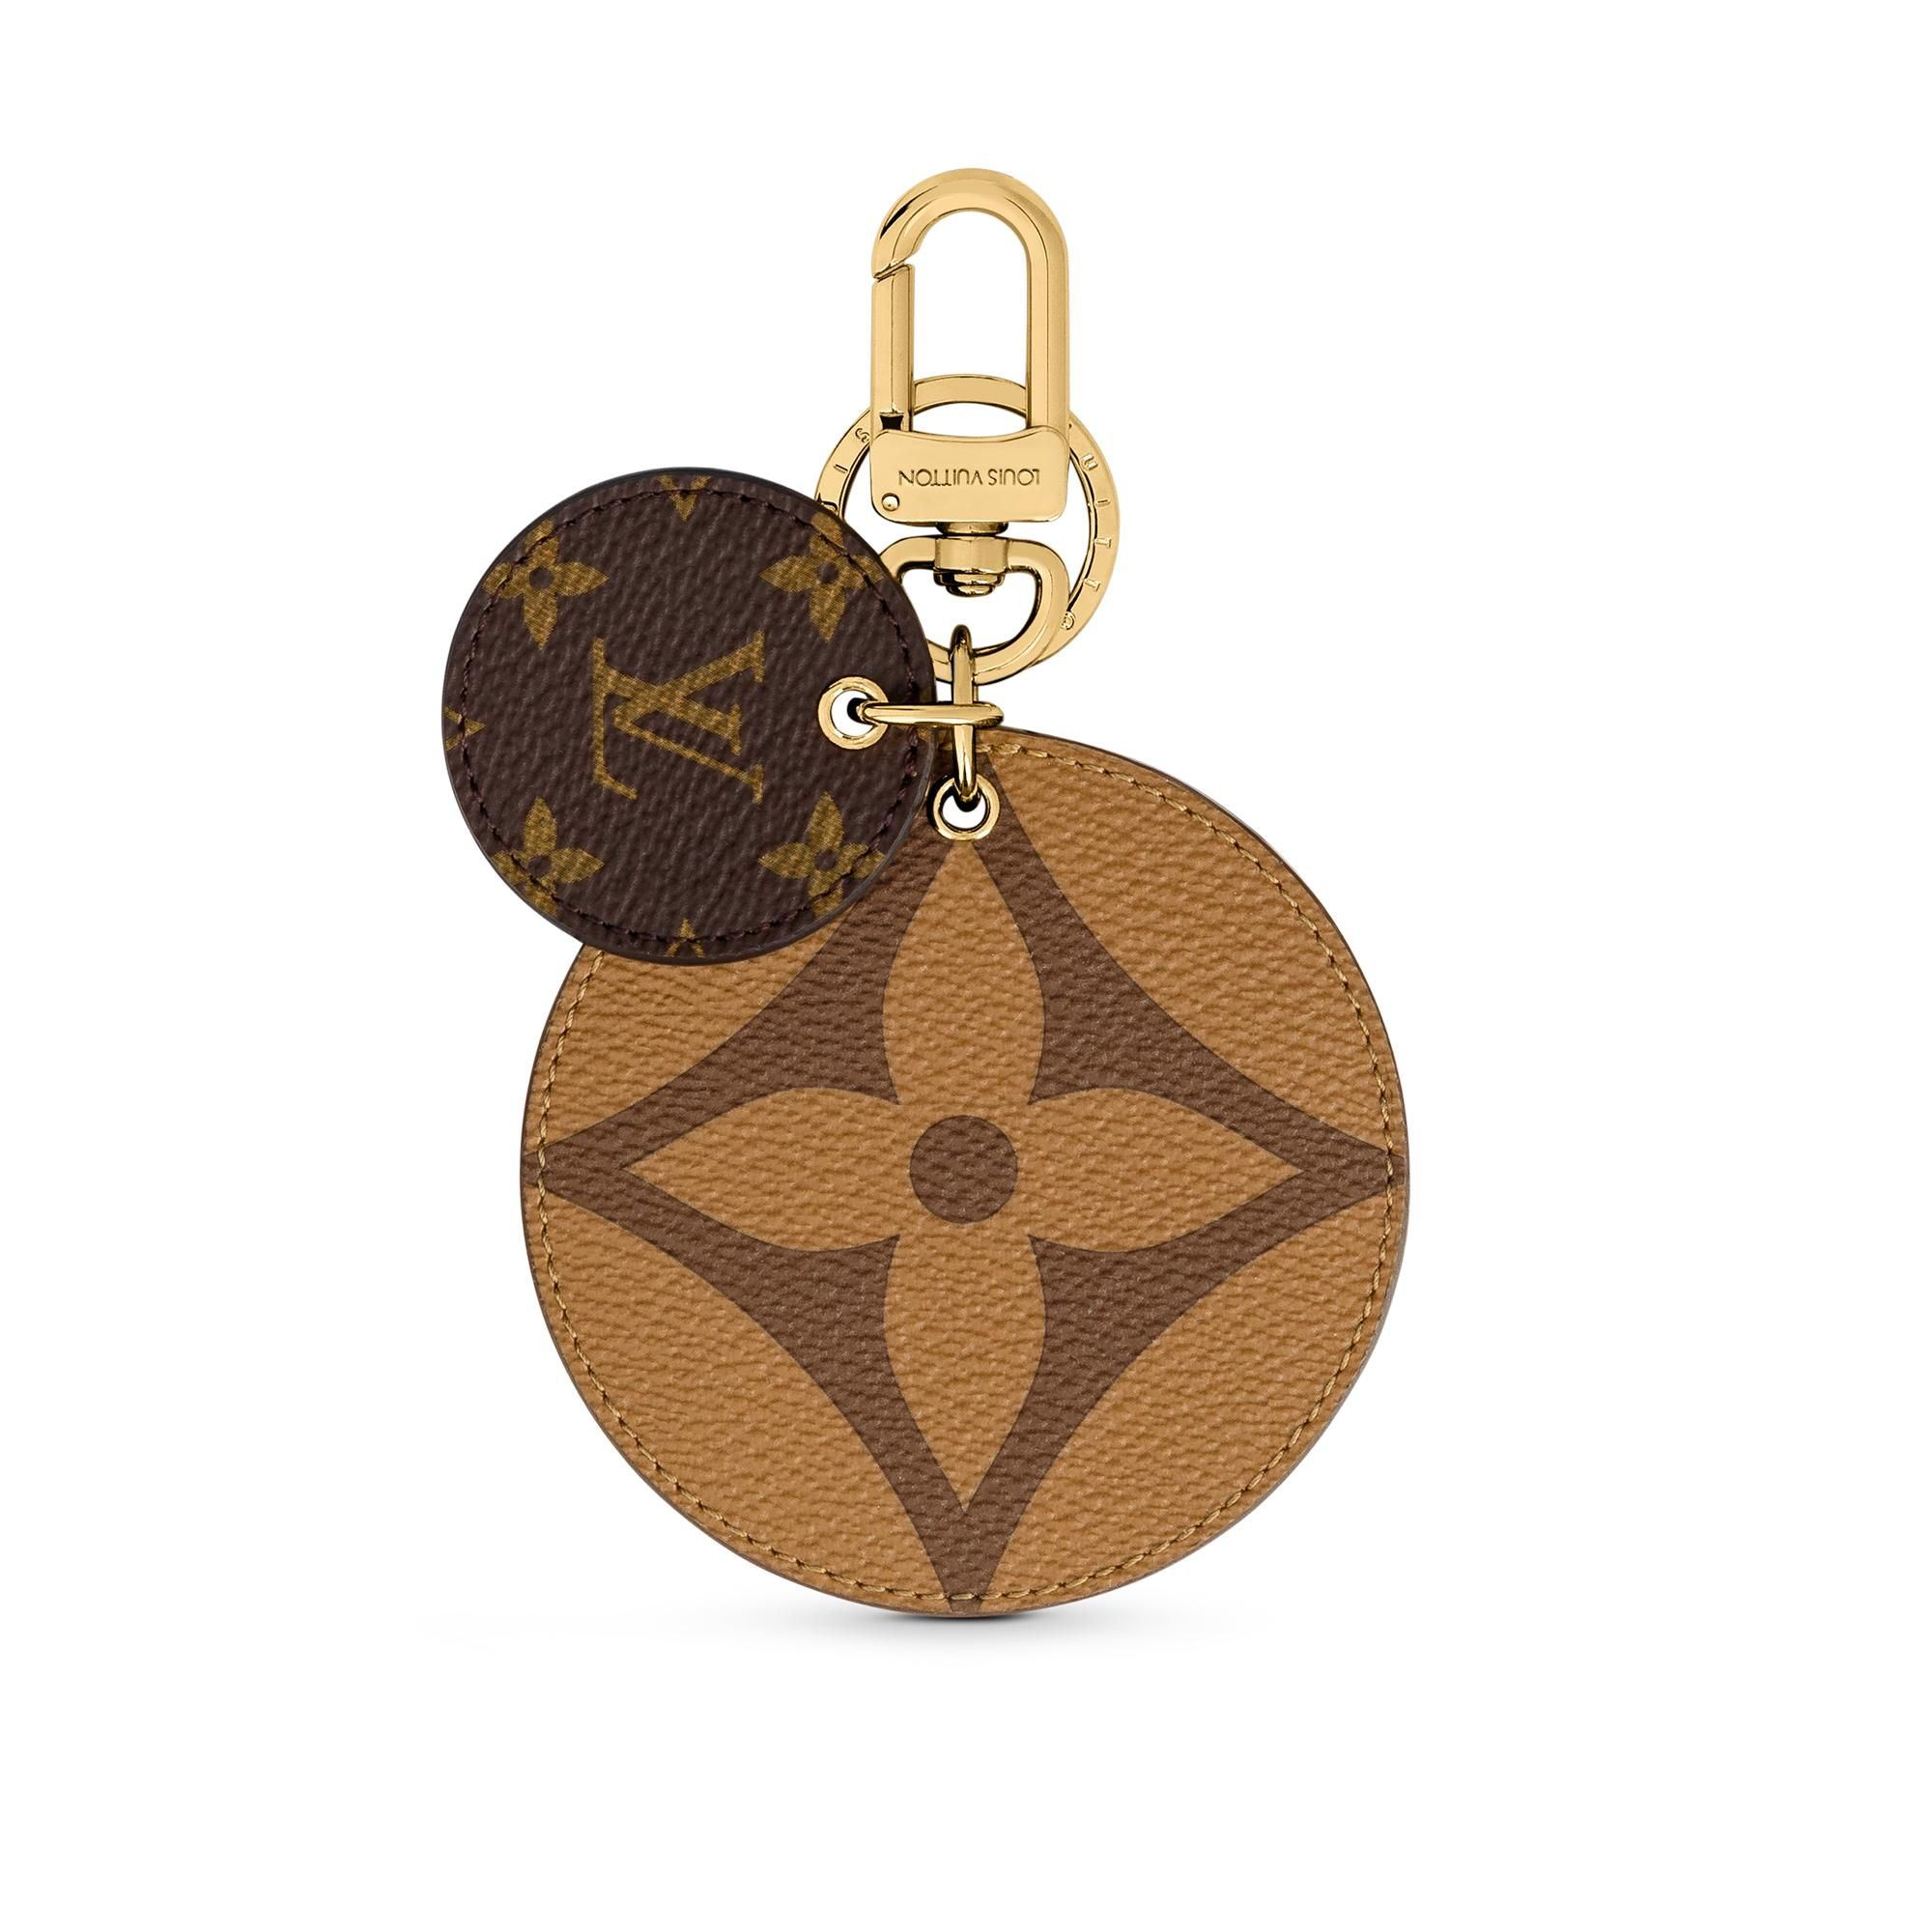 Products By Louis Vuitton Monogram Reverse Key Holder And Bag Charm In 2020 Bag Charm Louis Vuitton Bags